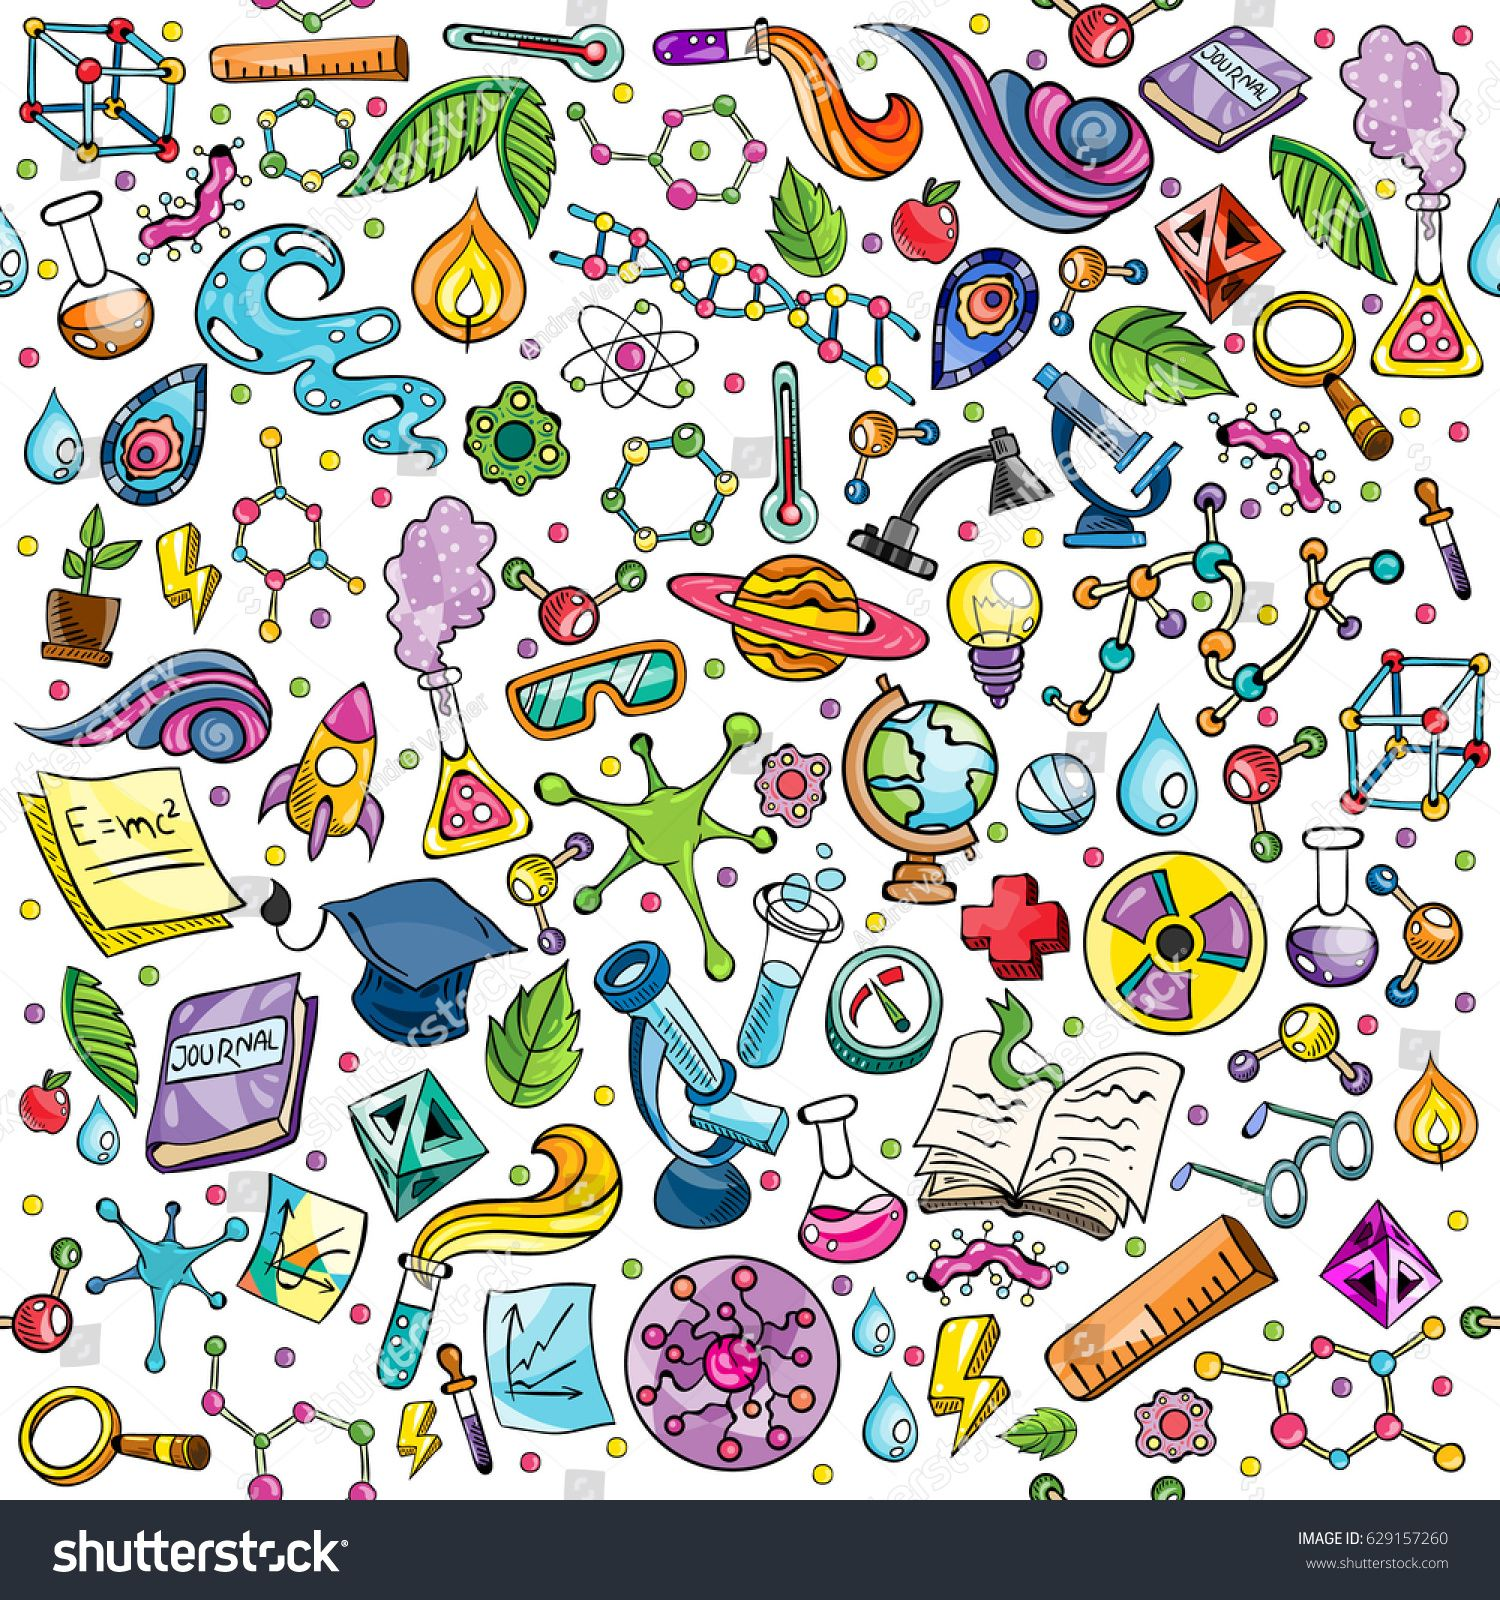 Science Design For Notebook: Science Illustration With Colourful Molecules Seamless